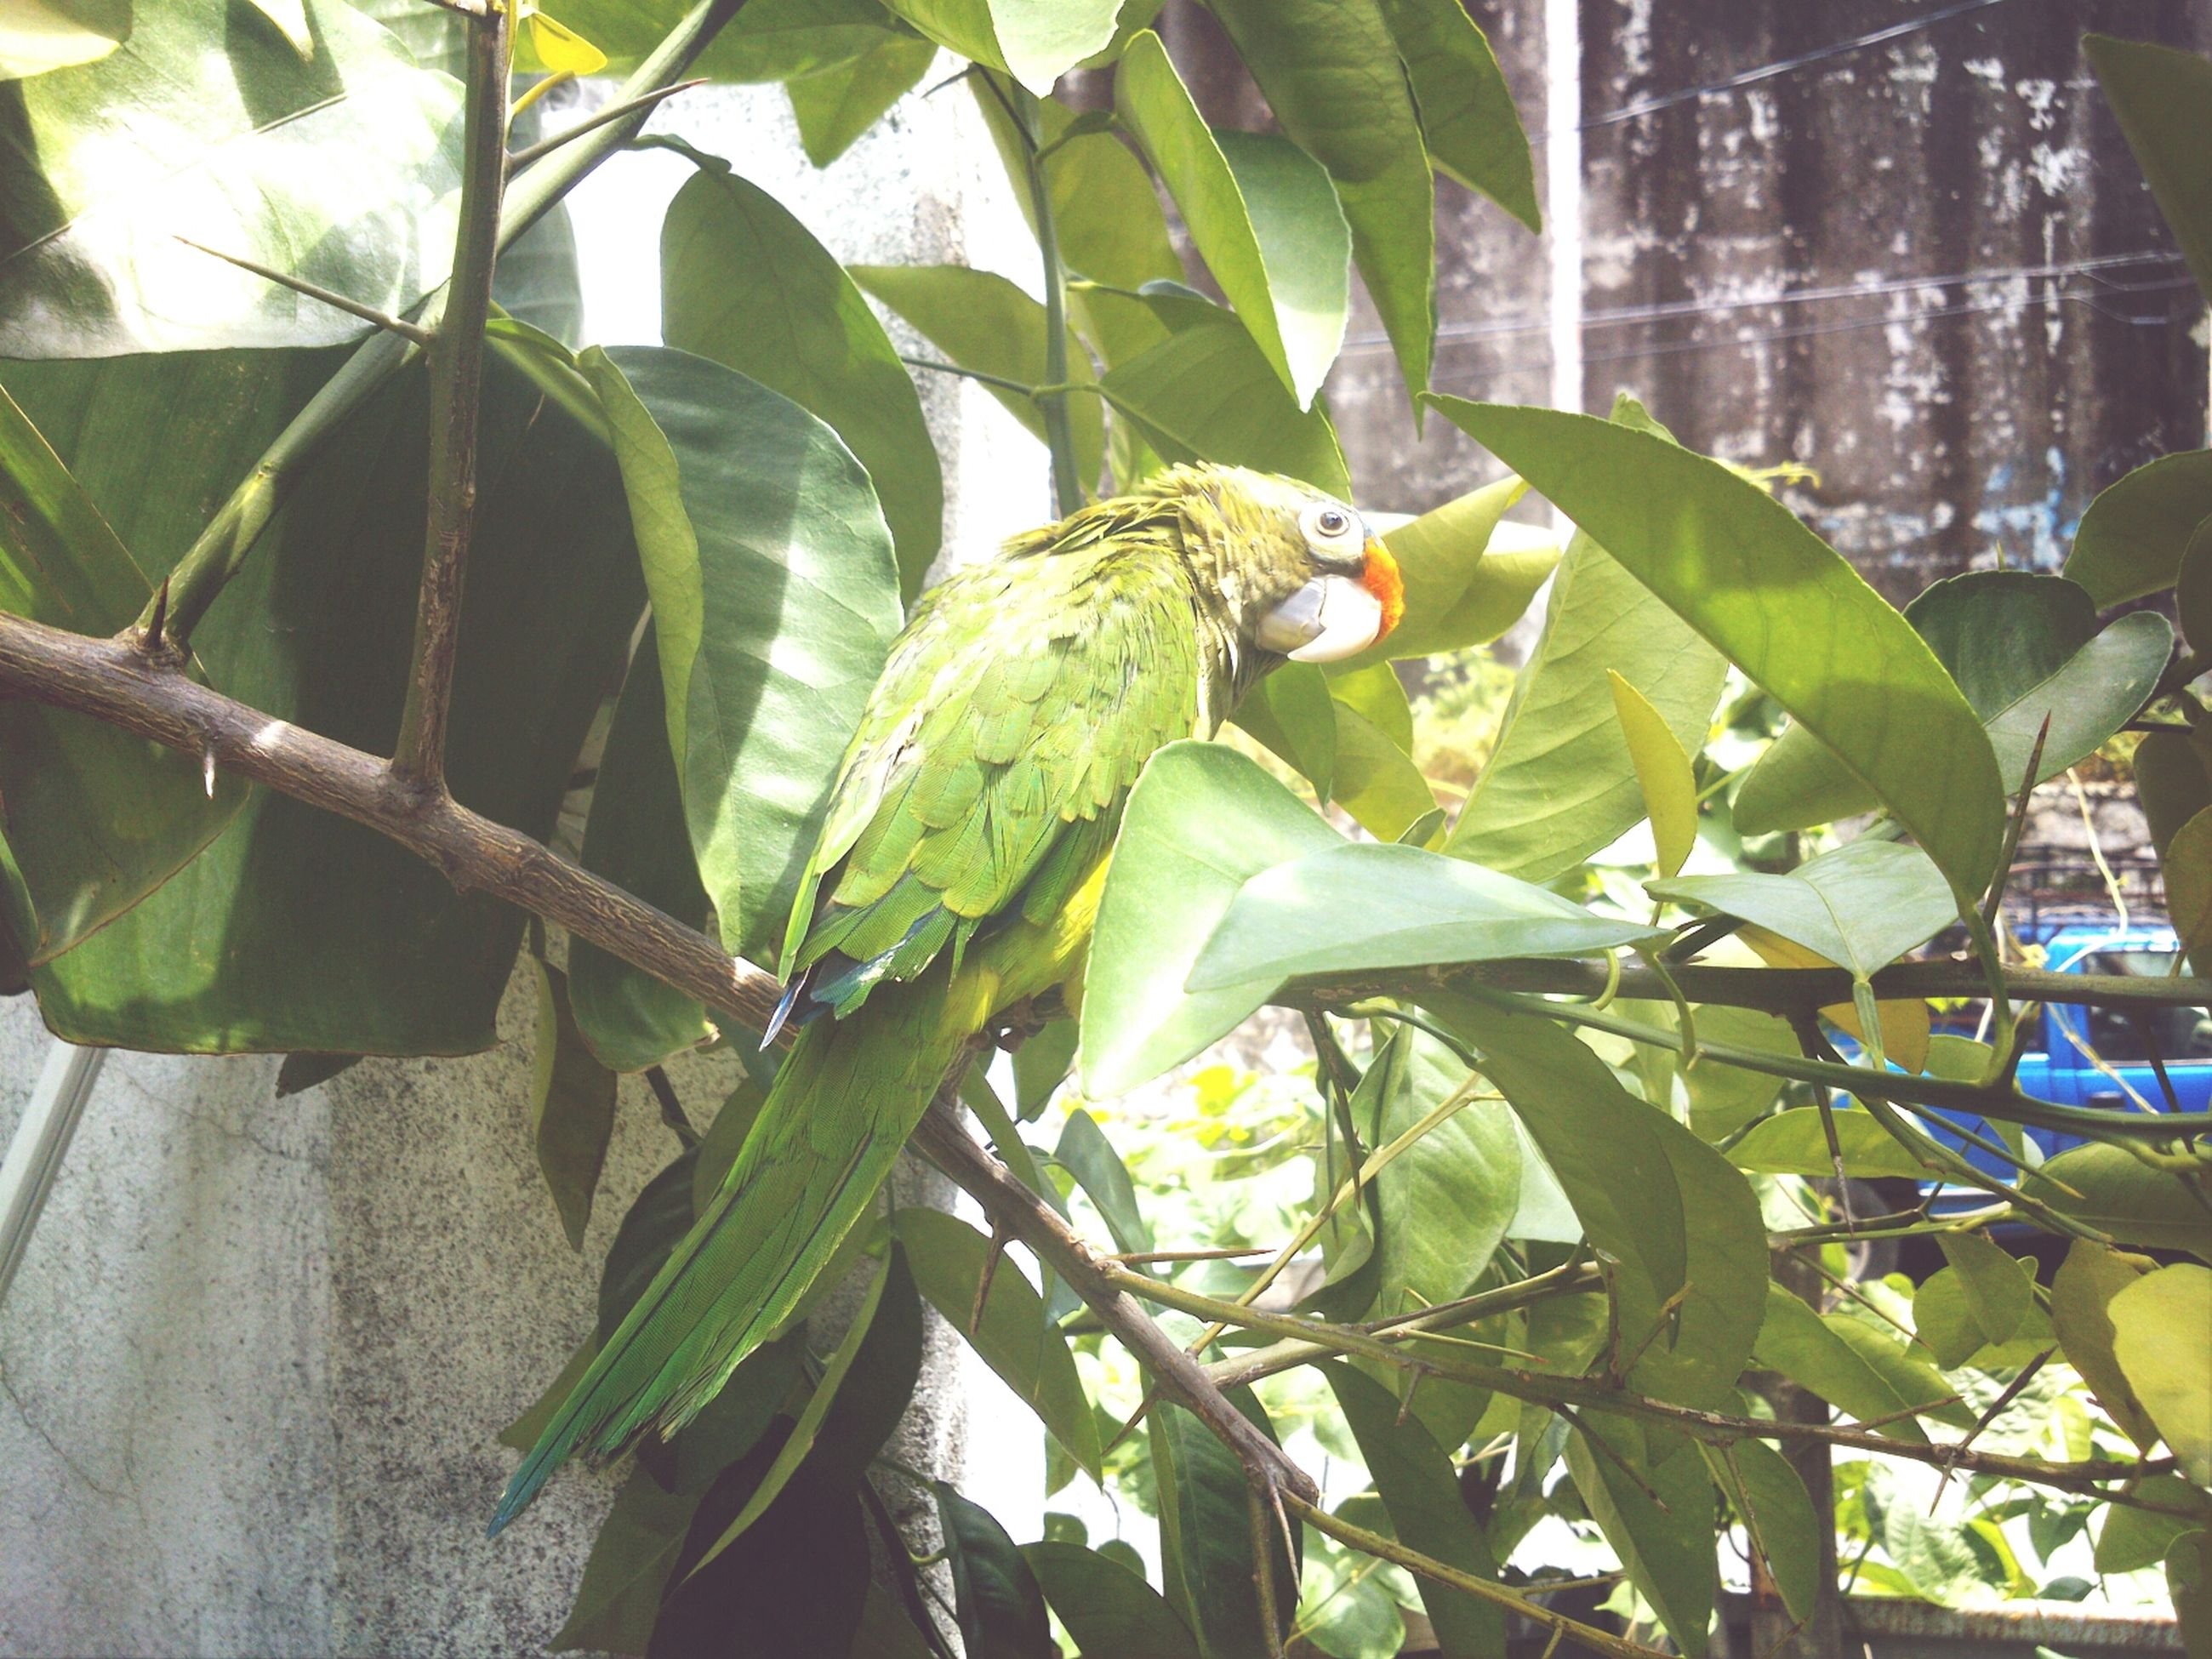 leaf, green color, growth, branch, tree, plant, animal themes, animals in the wild, nature, close-up, fruit, one animal, wildlife, focus on foreground, day, food and drink, green, outdoors, no people, sunlight